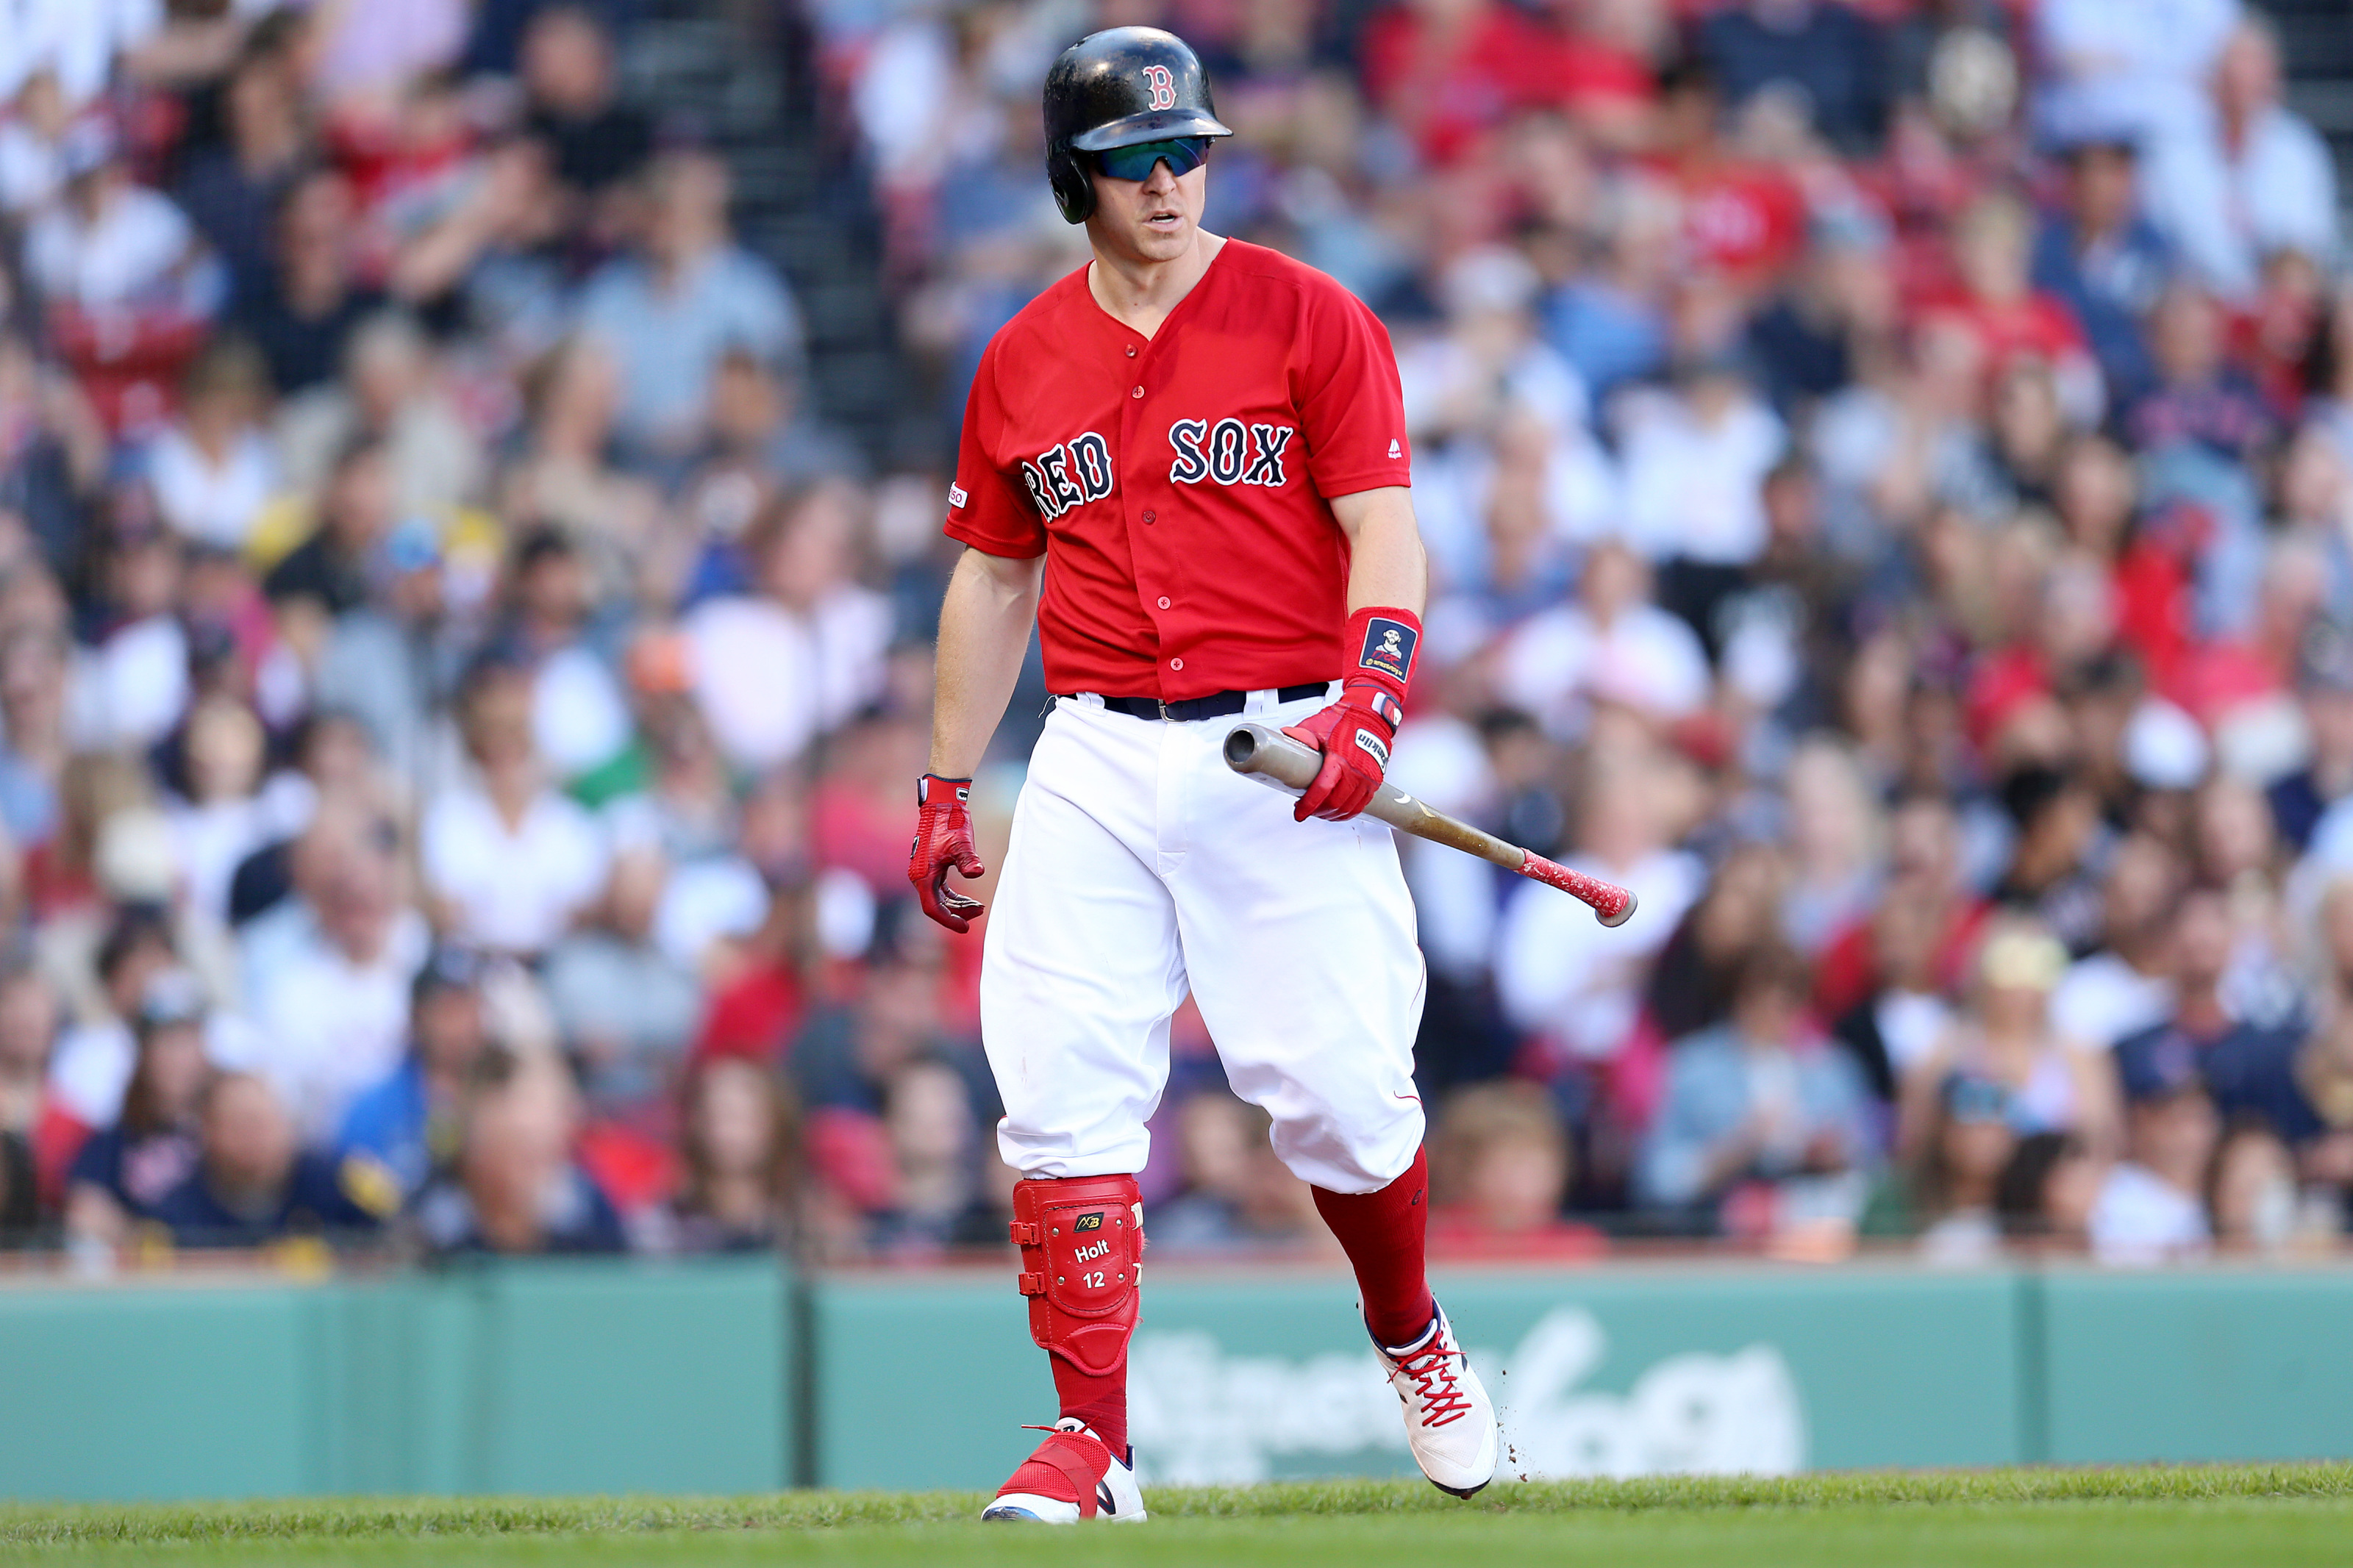 The Boston Red Sox should have signed Brock Holt